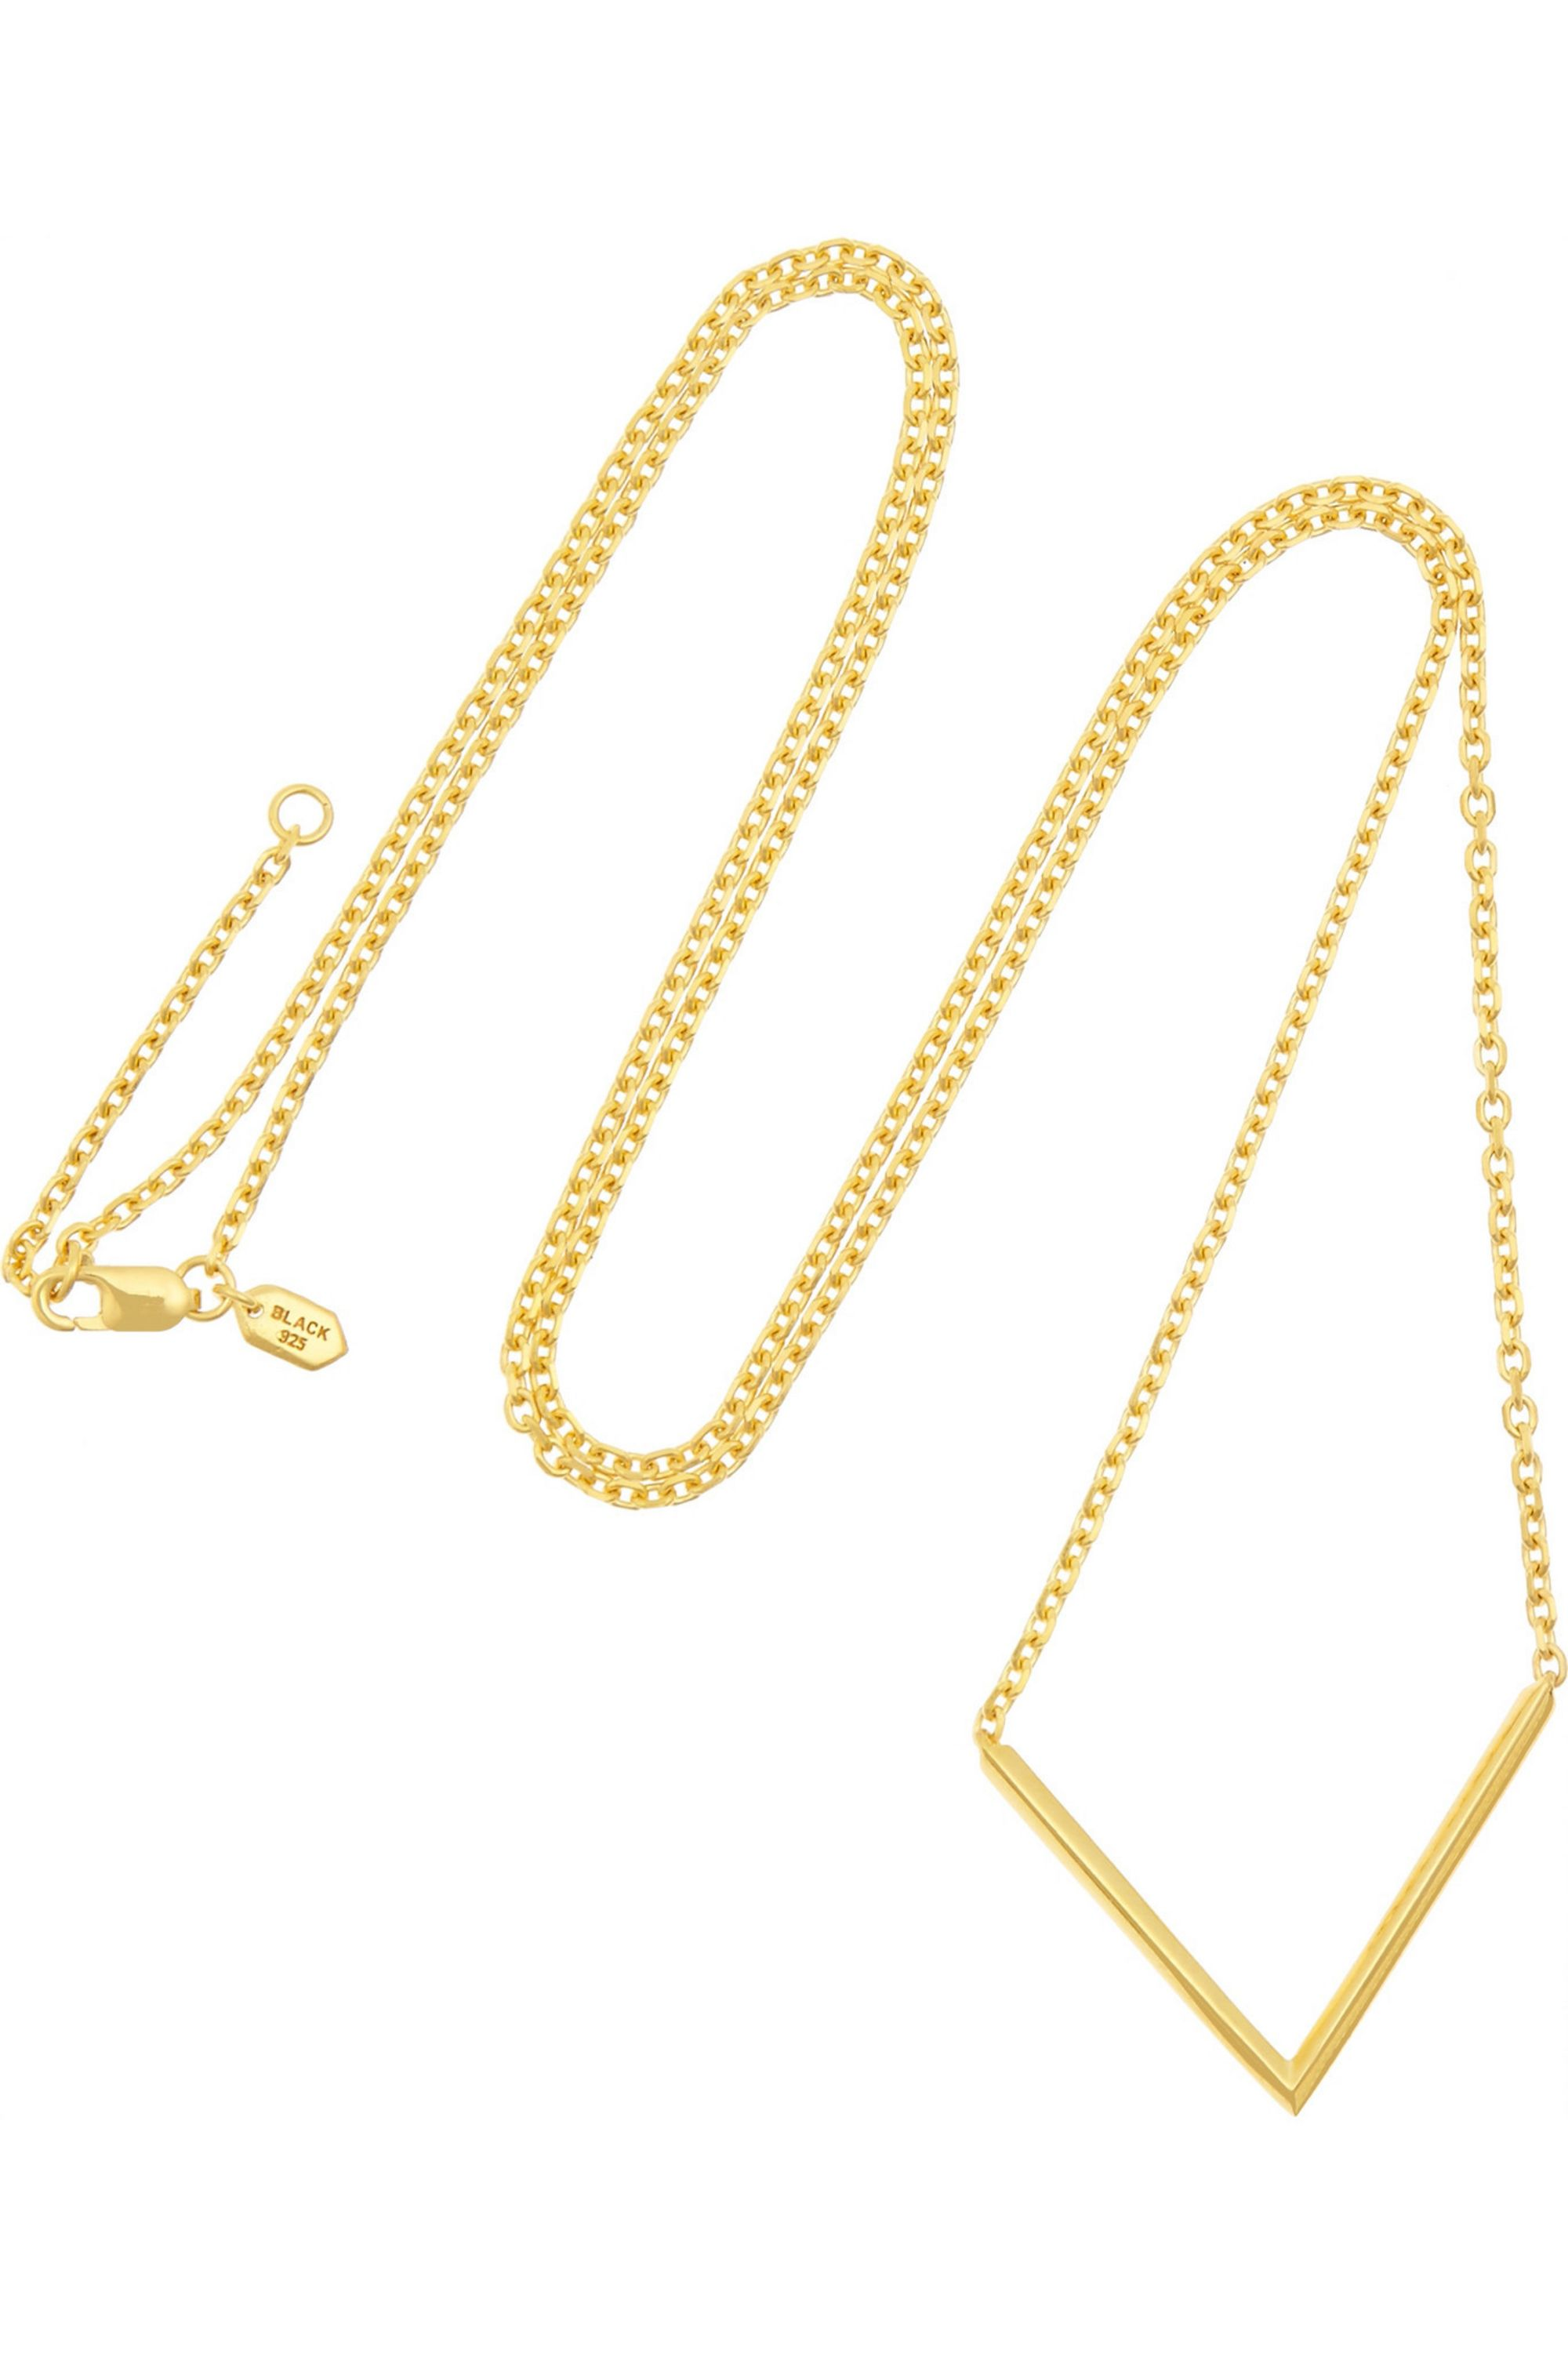 Maria Black Long Check gold-plated necklace